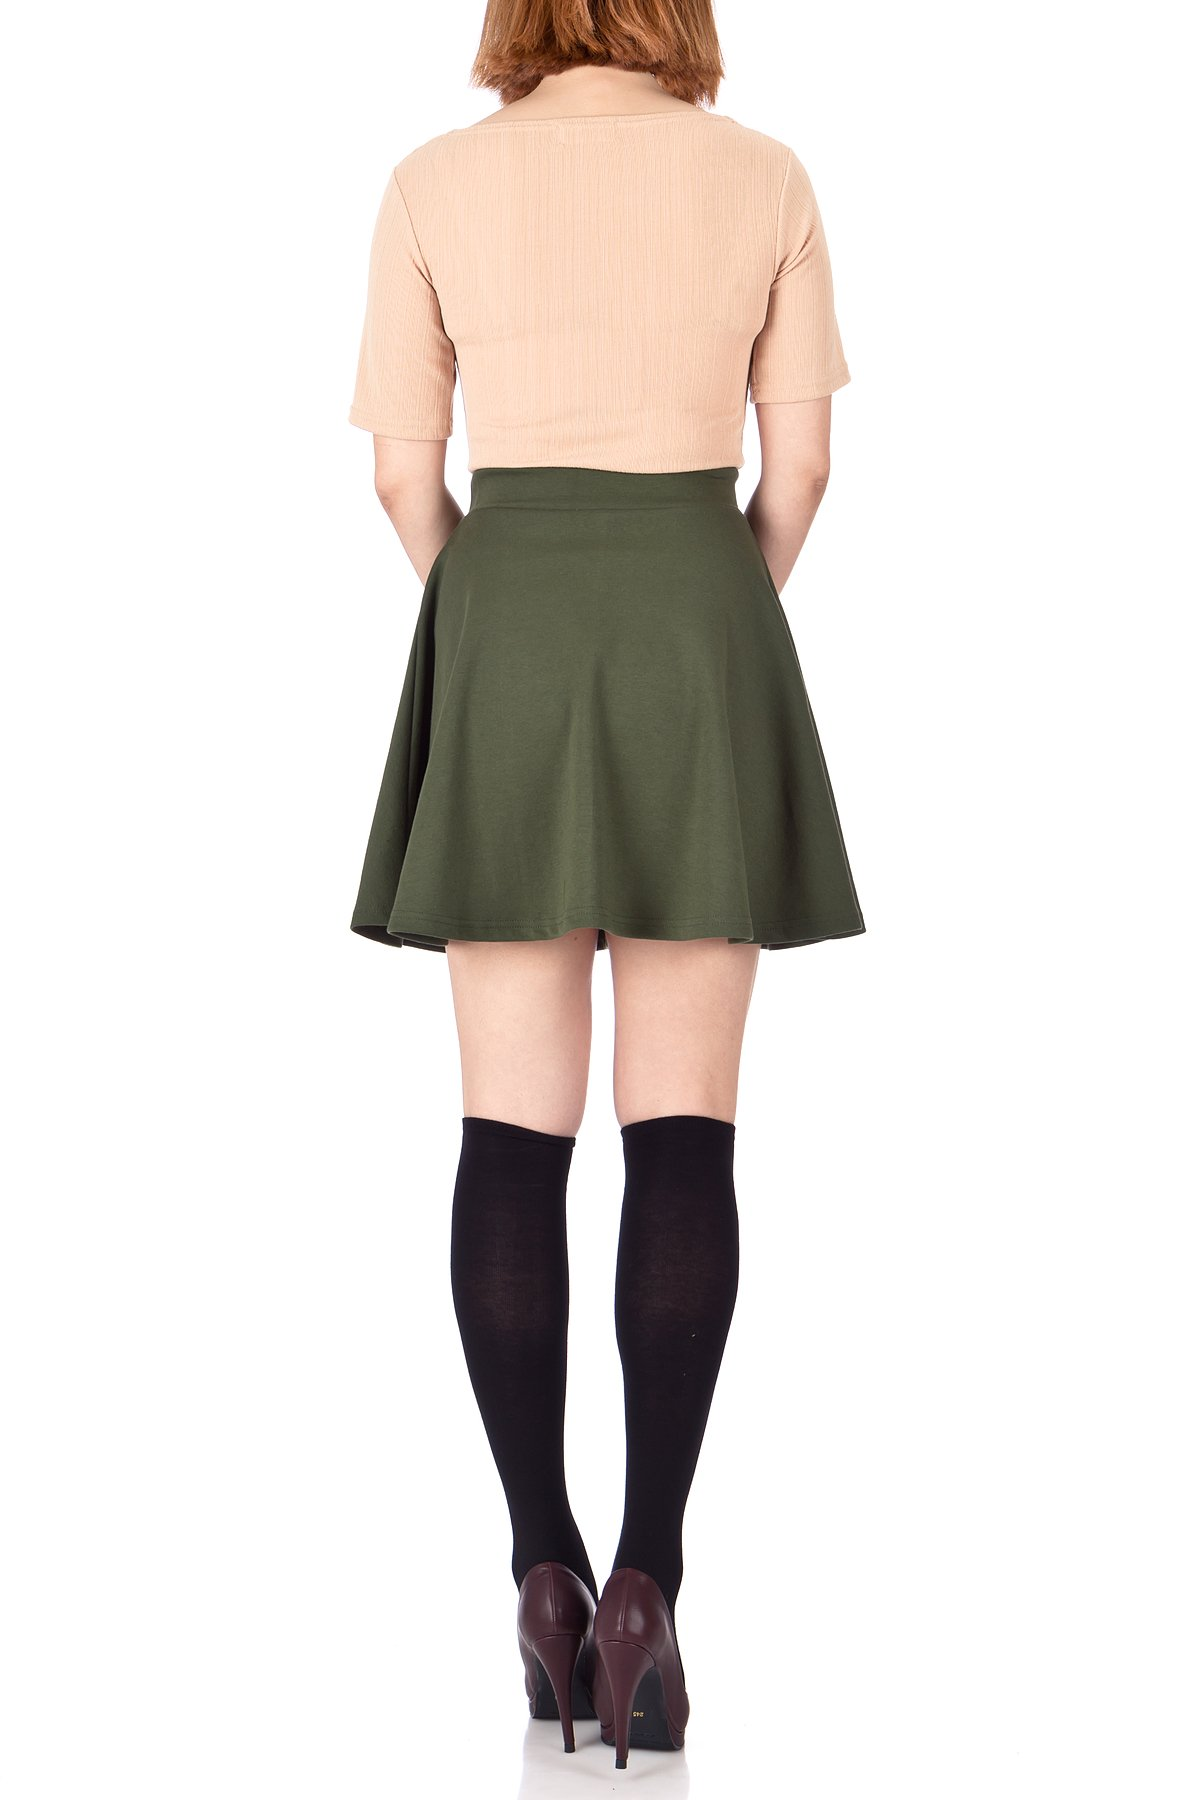 Basic Solid Stretchy Cotton High Waist line Flared Skater Mini Skirt Khaki 04